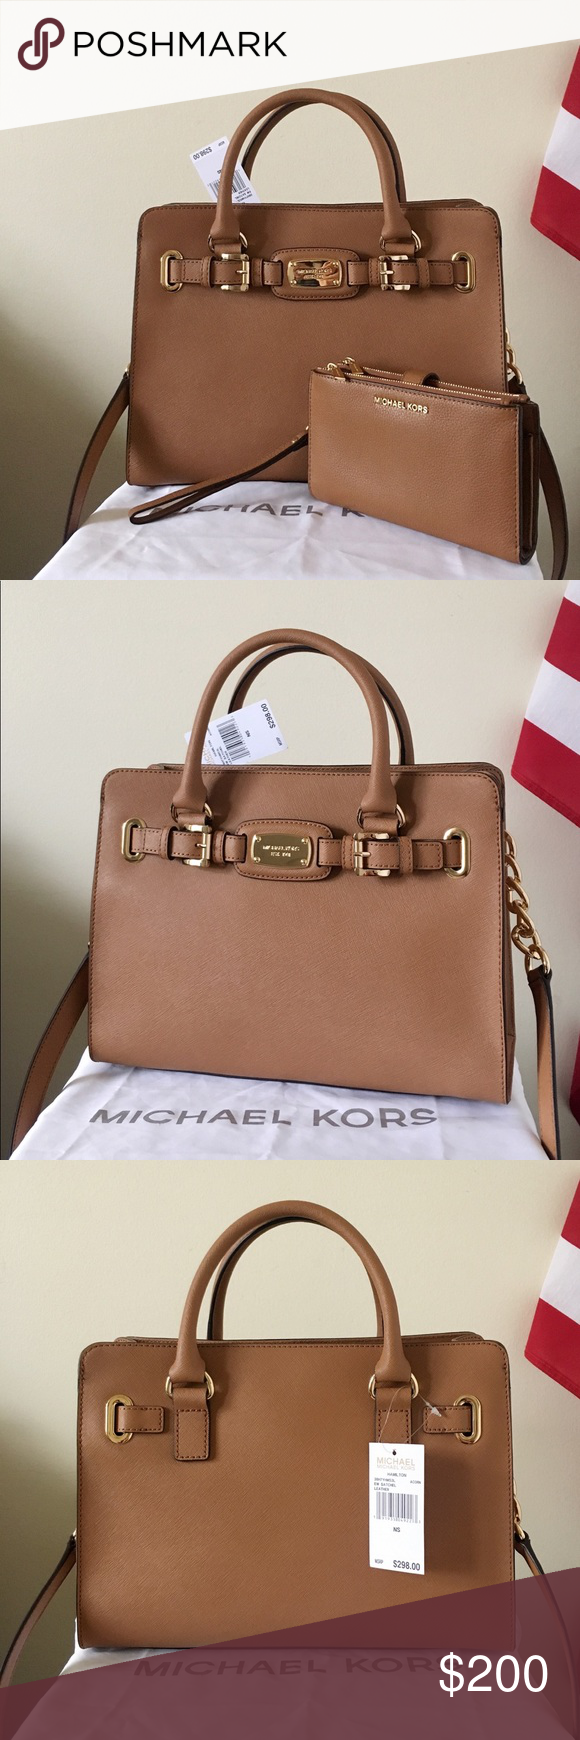 9b5f88641926 NWT Michael Kors Hamilton Satchel With Wallet Beautiful set! Acorn color  with gold detailing.